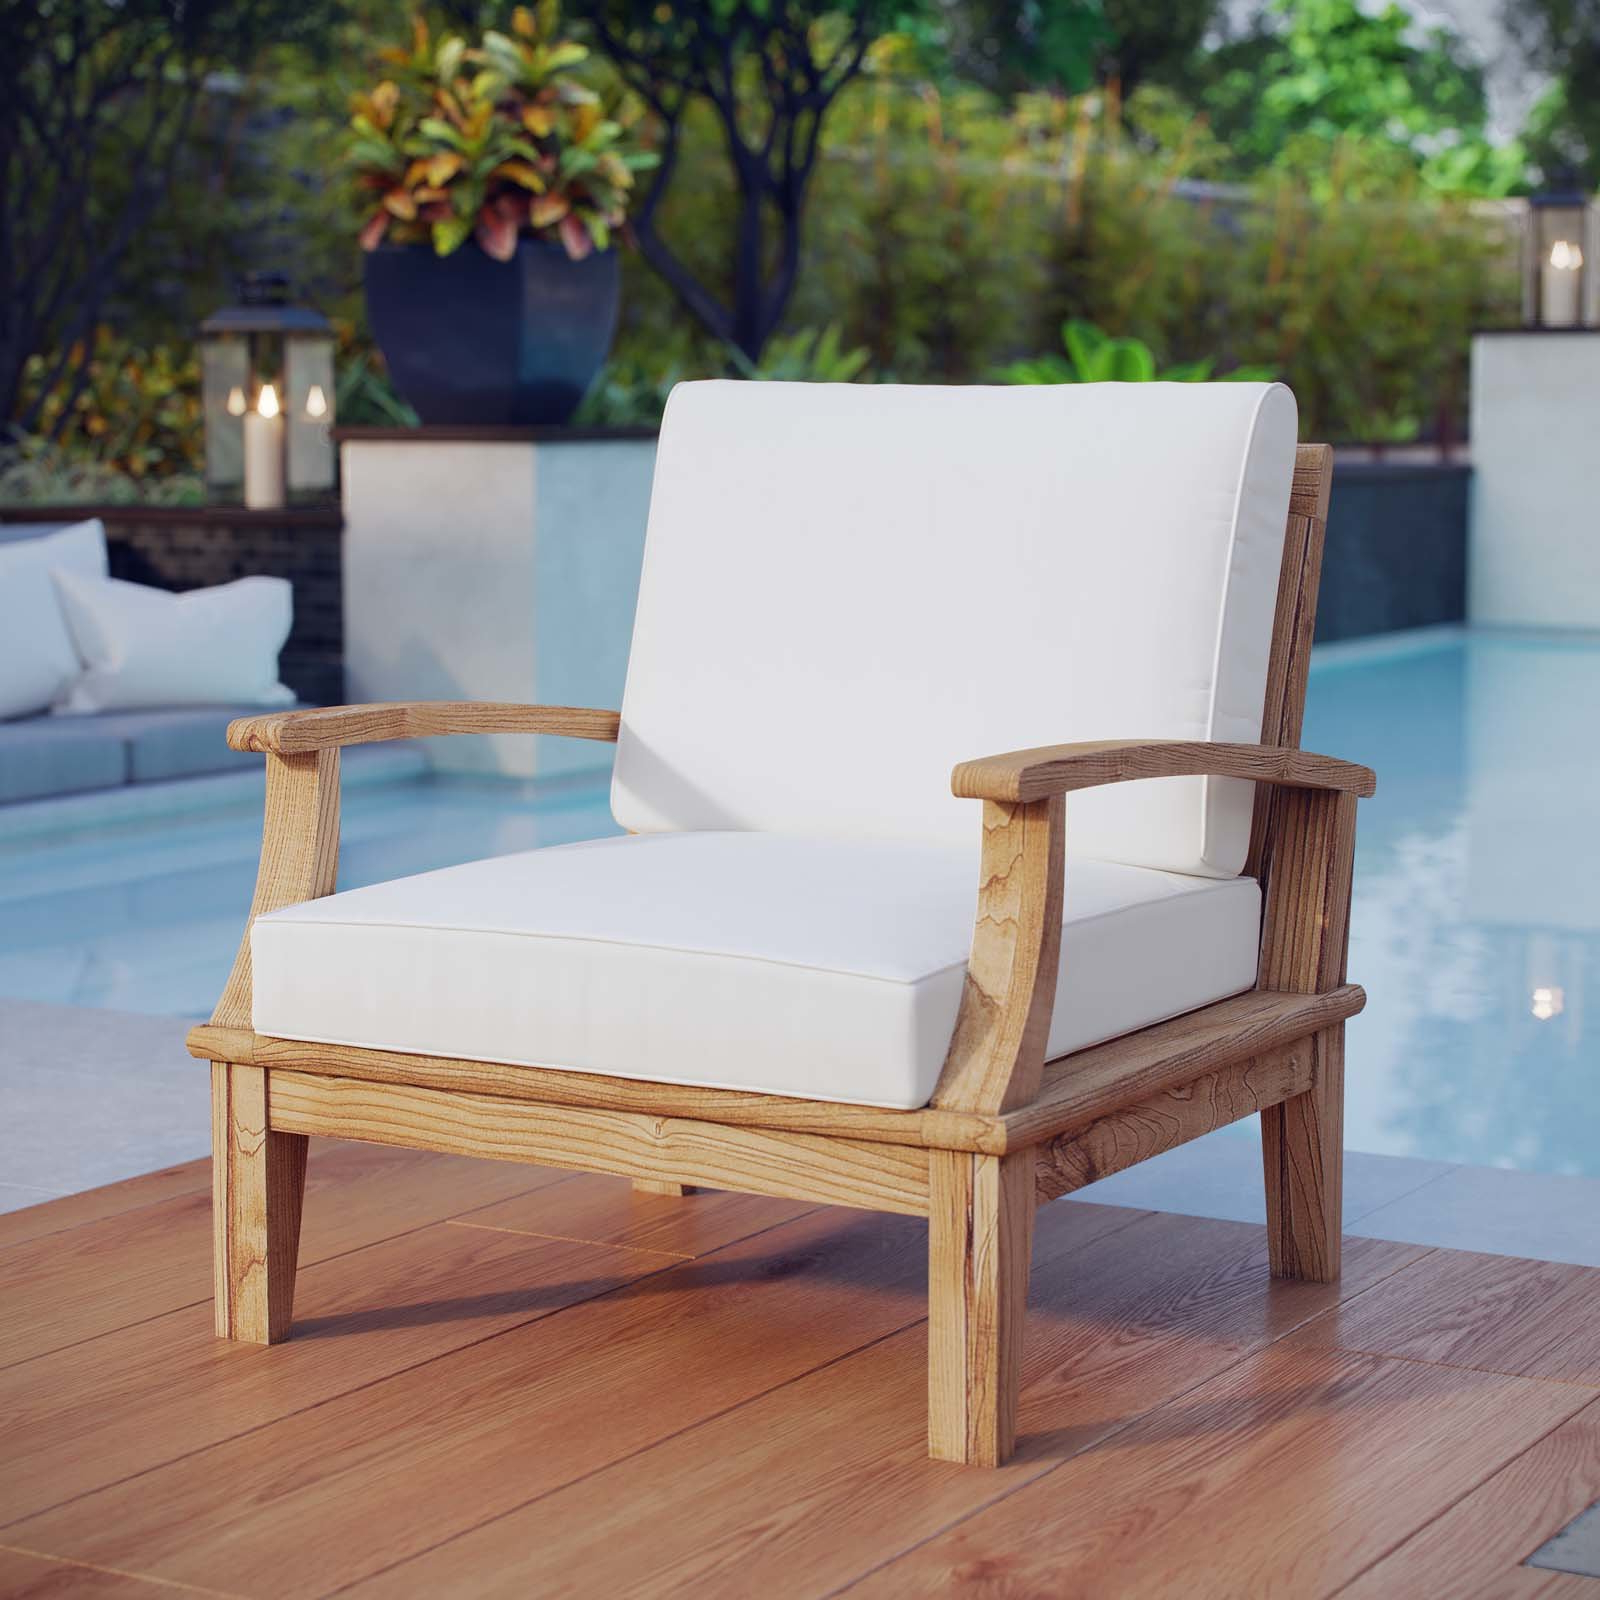 Montford Teak Patio Sofas With Cushions In Trendy Elaina Teak Patio Chair With Cushions (View 12 of 20)